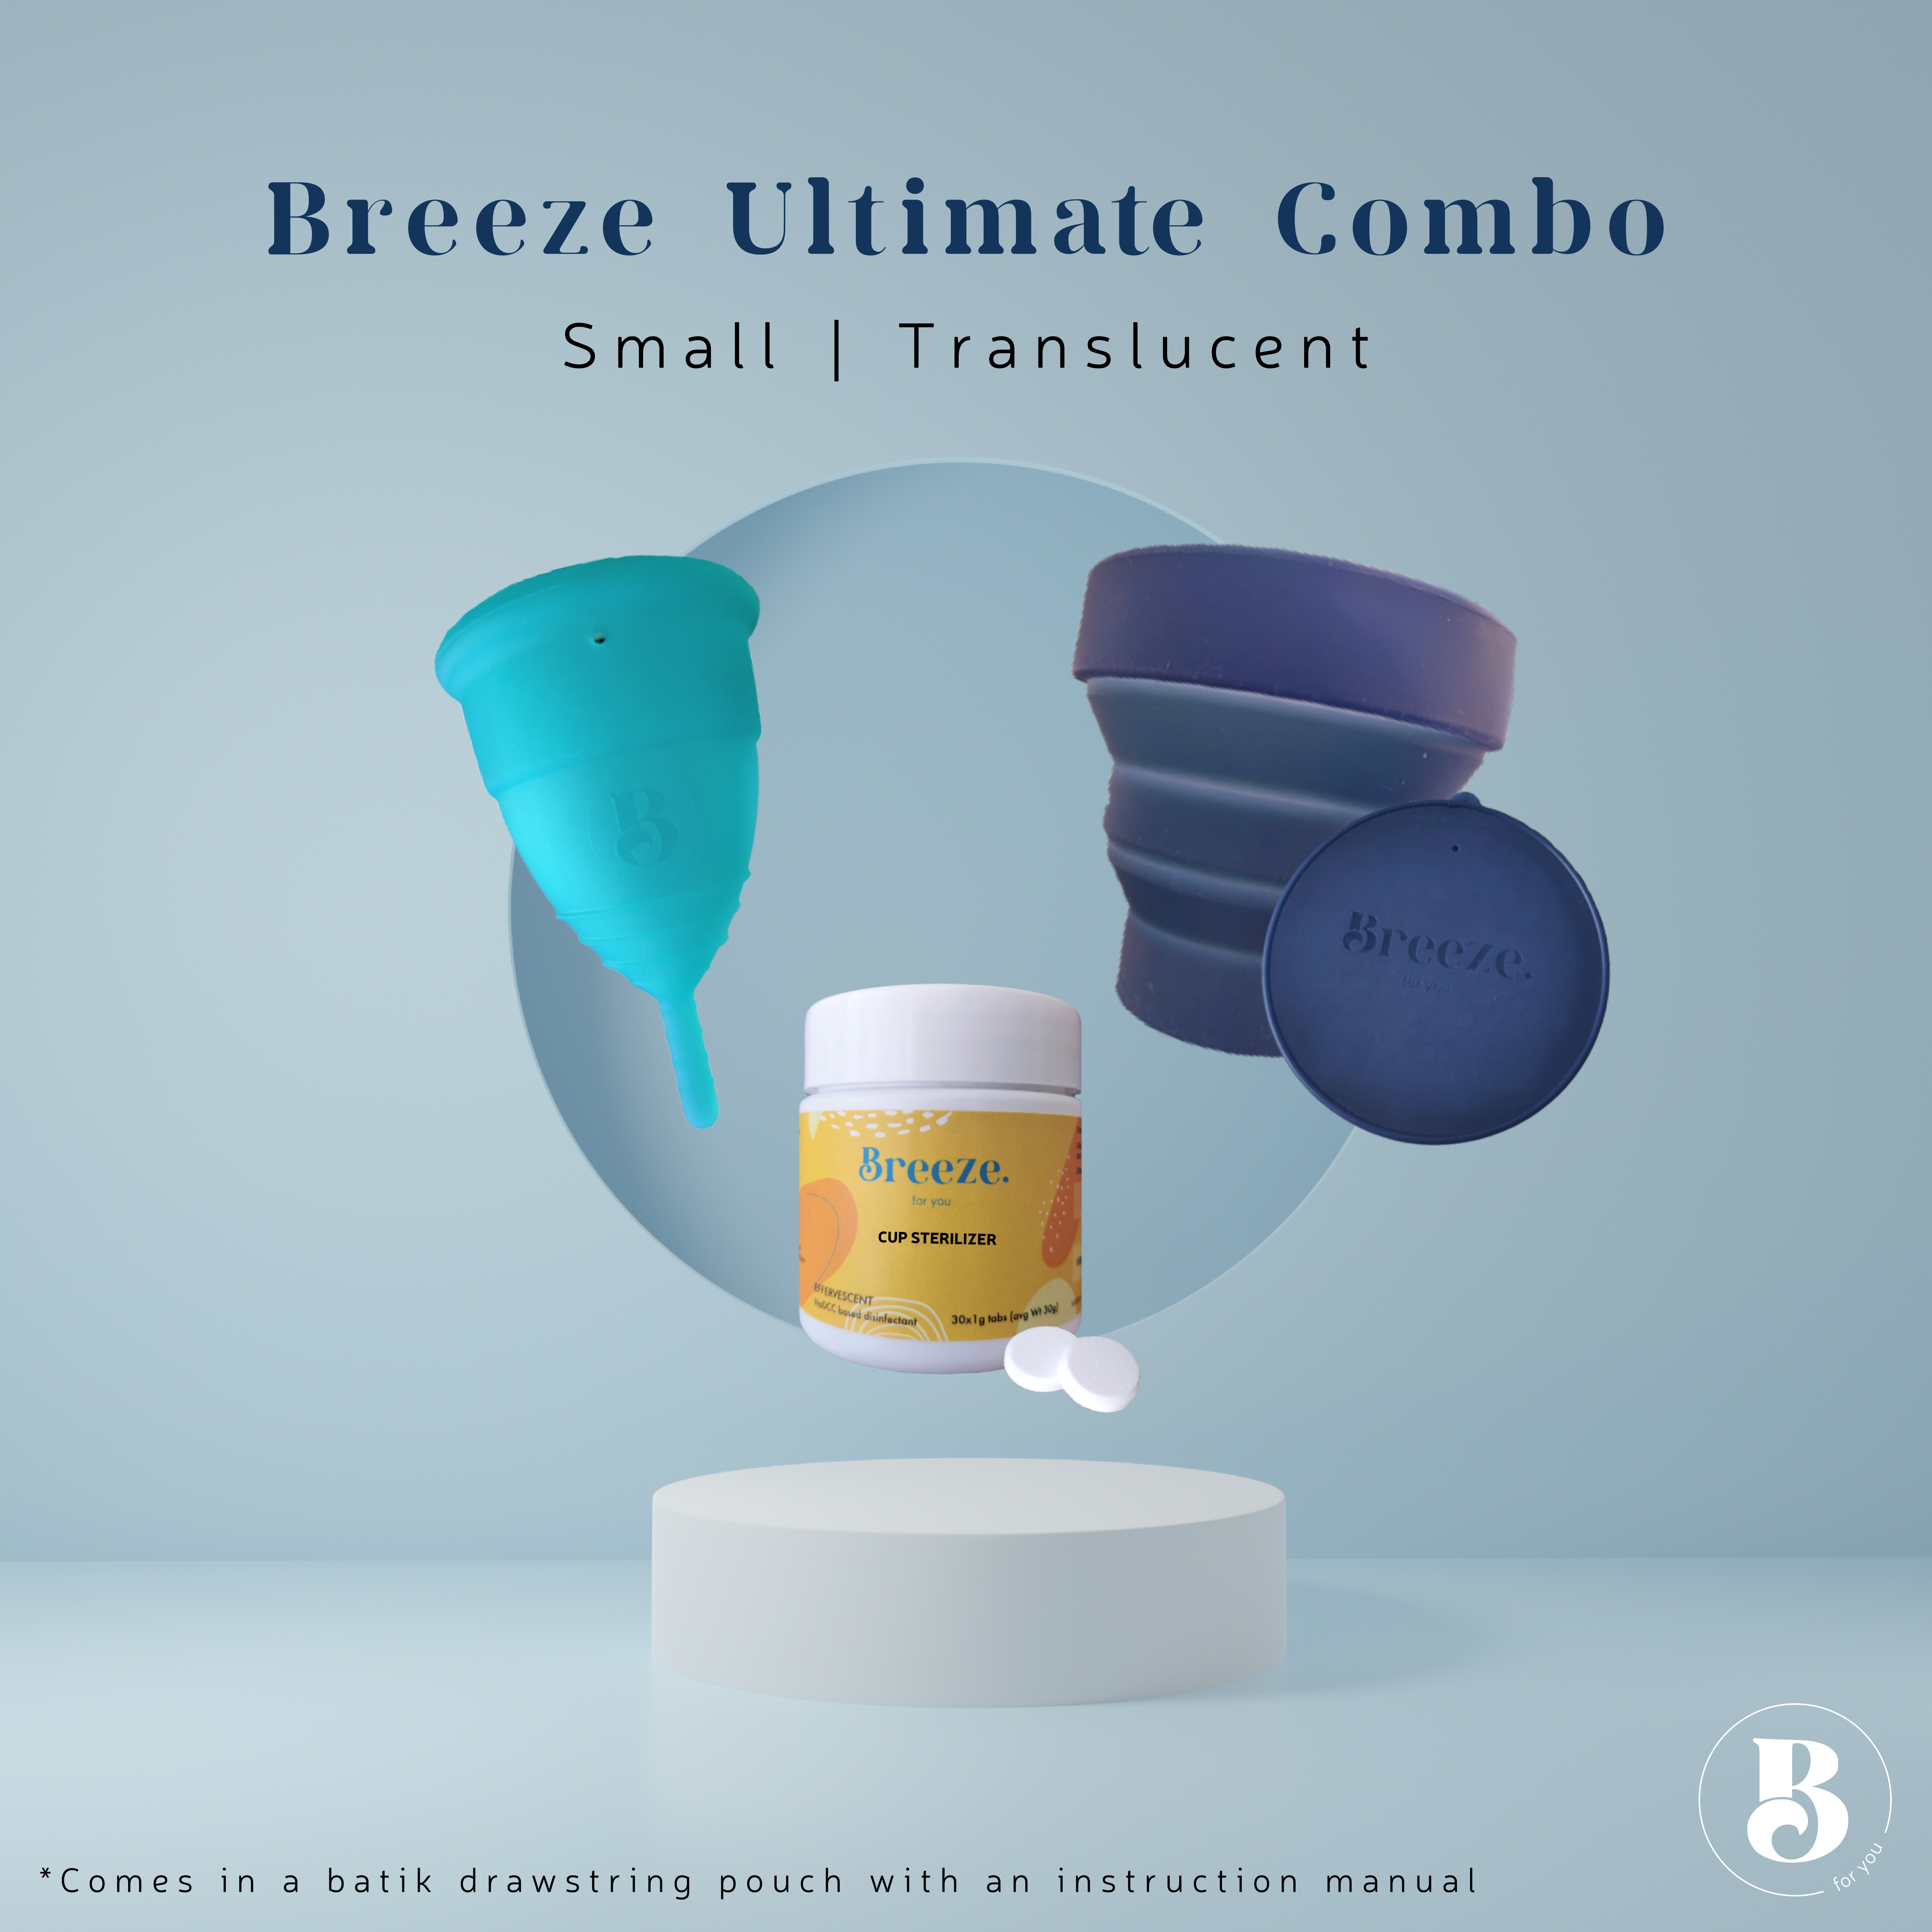 Breeze Ultimate Combo Small Translucent